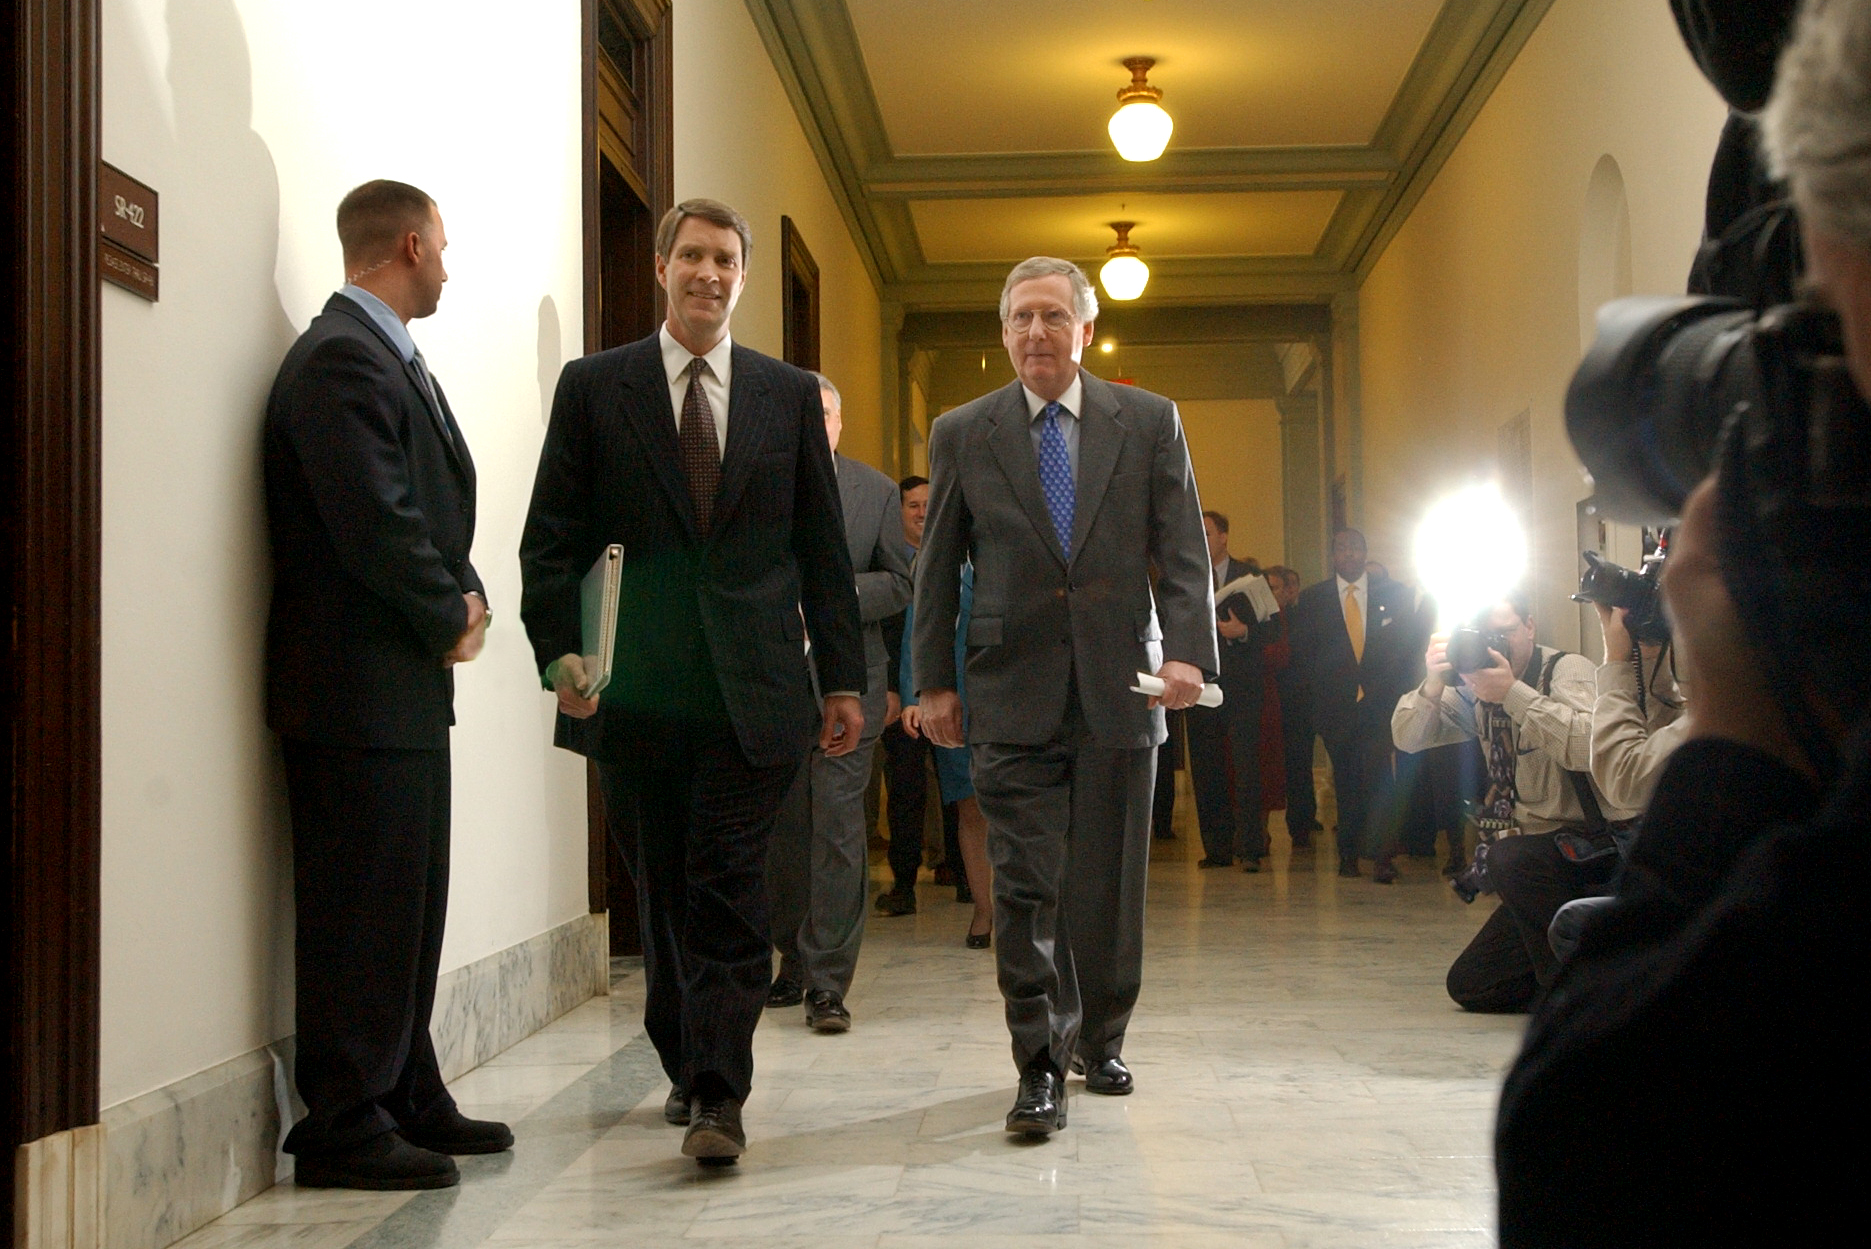 Frist2/010603 - Senate Majoriy Leader Bill Frist, R-Tenn., left, and Majority Whip Sen. Mitch McConnell, R-Ky., walk to the first meeting of the Republican Leadership, Monday, in Russell Building